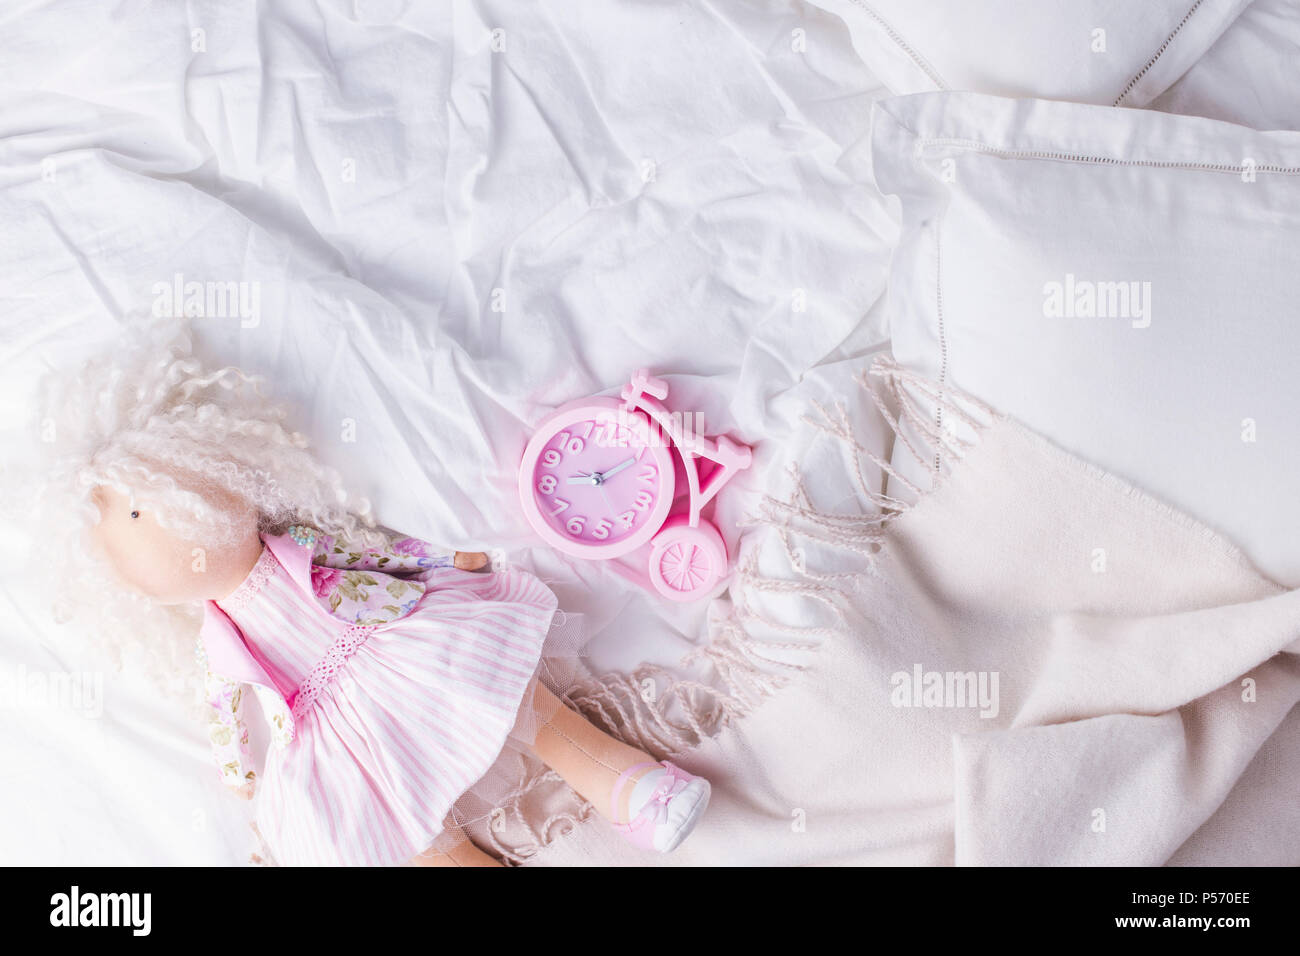 Top View Bed With Crumpled Bed Sheet Good Morning After A